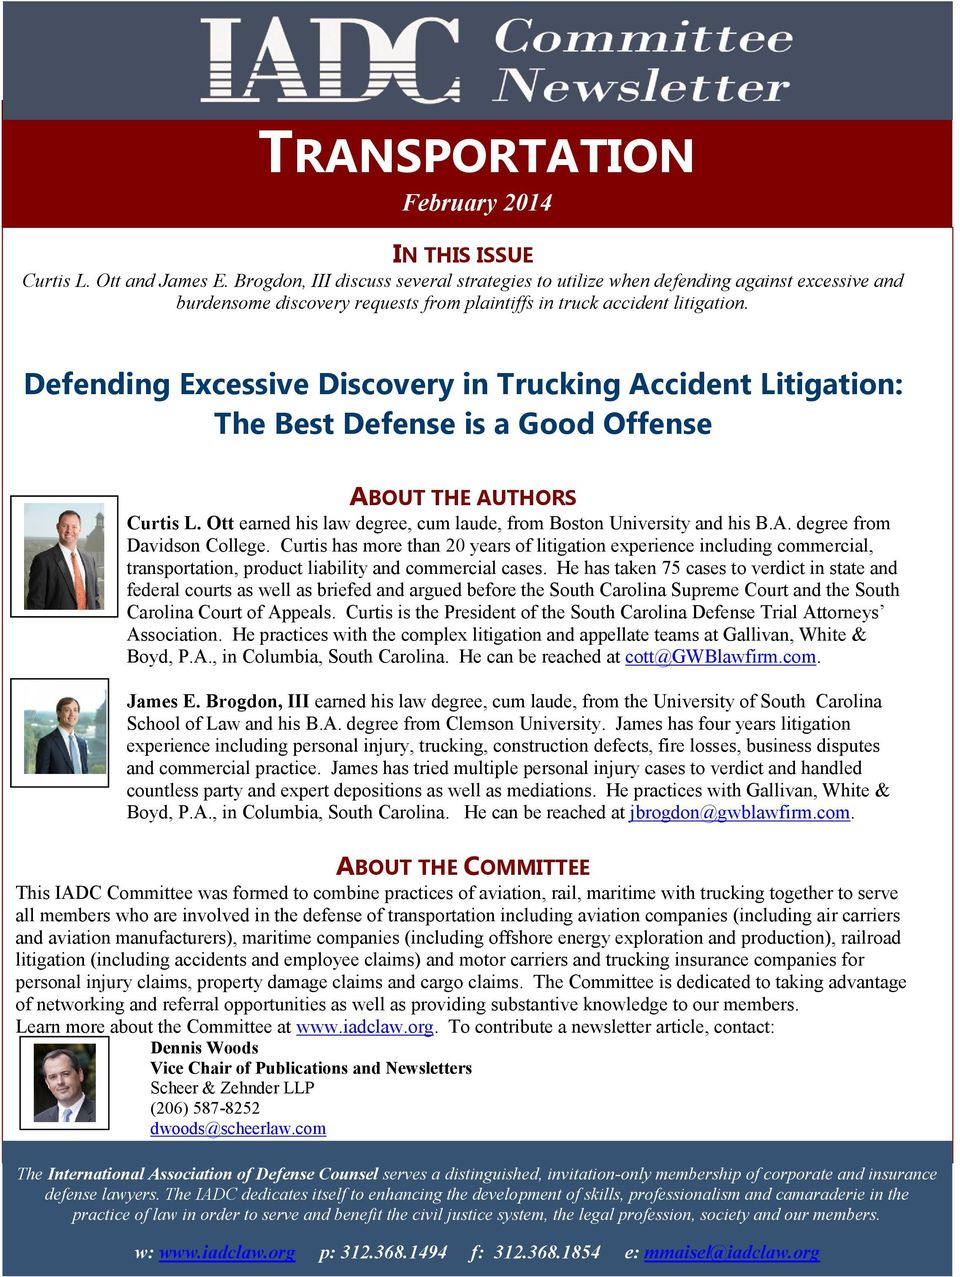 Defending Excessive Discovery in Trucking Accident Litigation: The Best Defense is a Good Offense ABOUT THE AUTHORS Curtis L. Ott earned his law degree, cum laude, from Boston University and his B.A. degree from Davidson College.